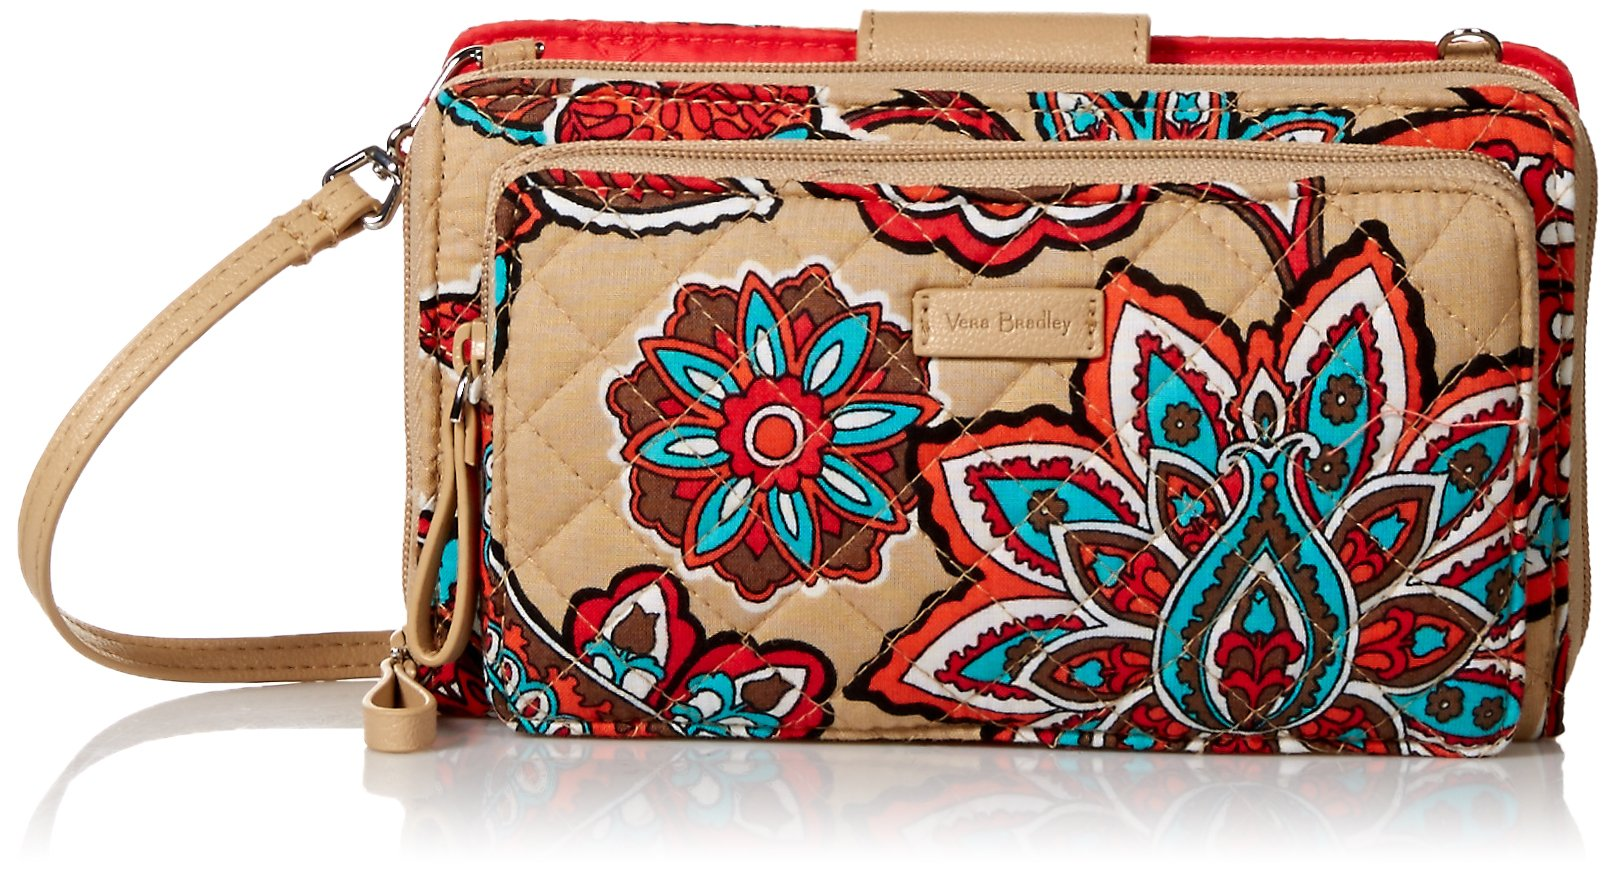 Vera Bradley Iconic Deluxe All Together Crossbody, Signature Cotton, Desert Floral by Vera Bradley (Image #1)